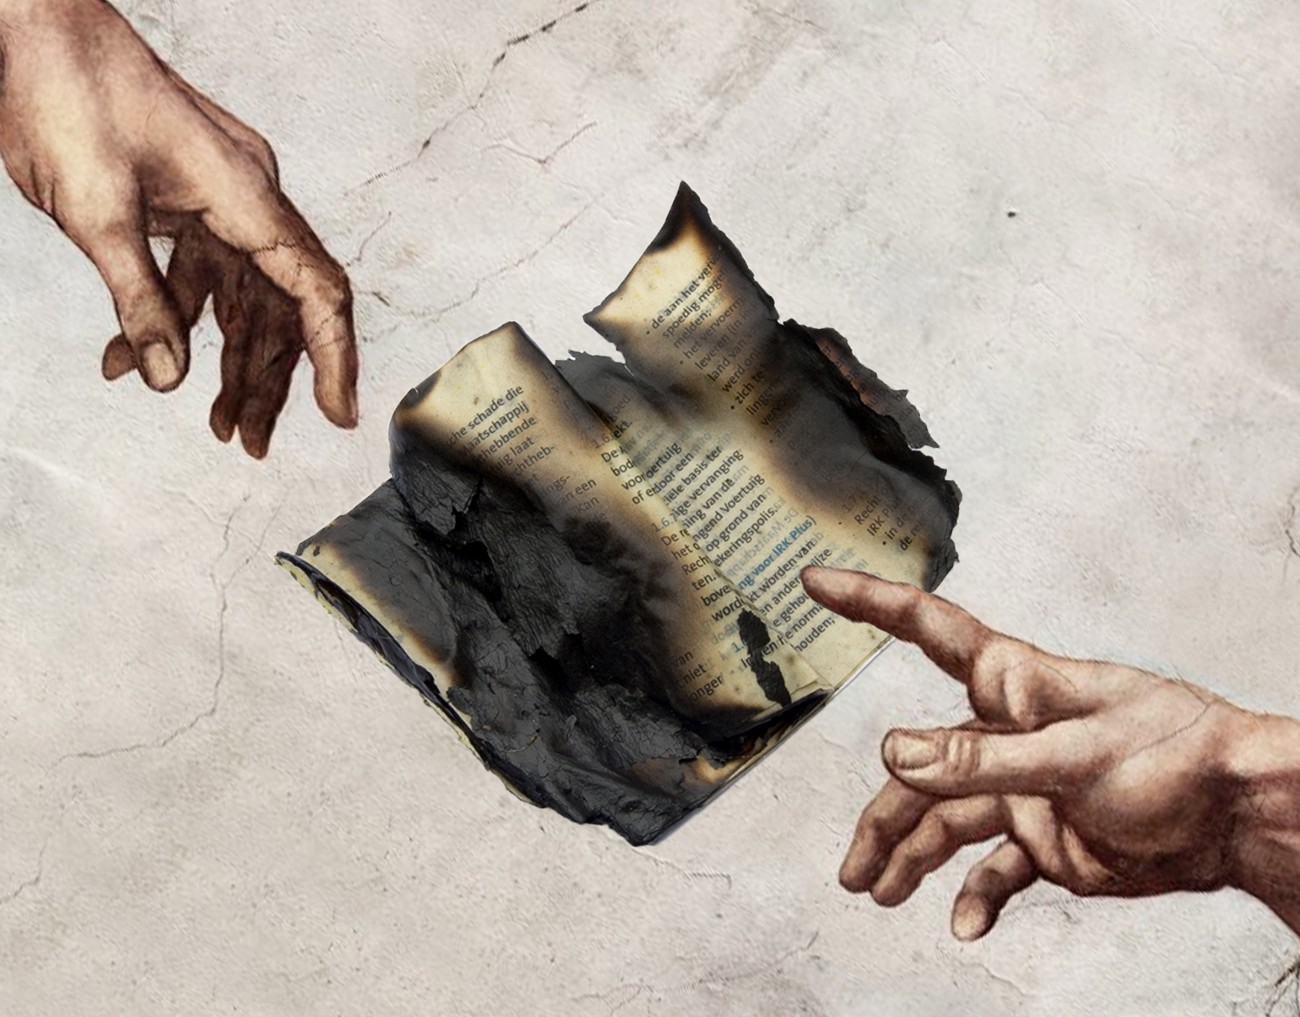 """The two hands from Michelangelo's """"The Creation of Adam"""", with a burnt piece of paper resembling a contract between them."""